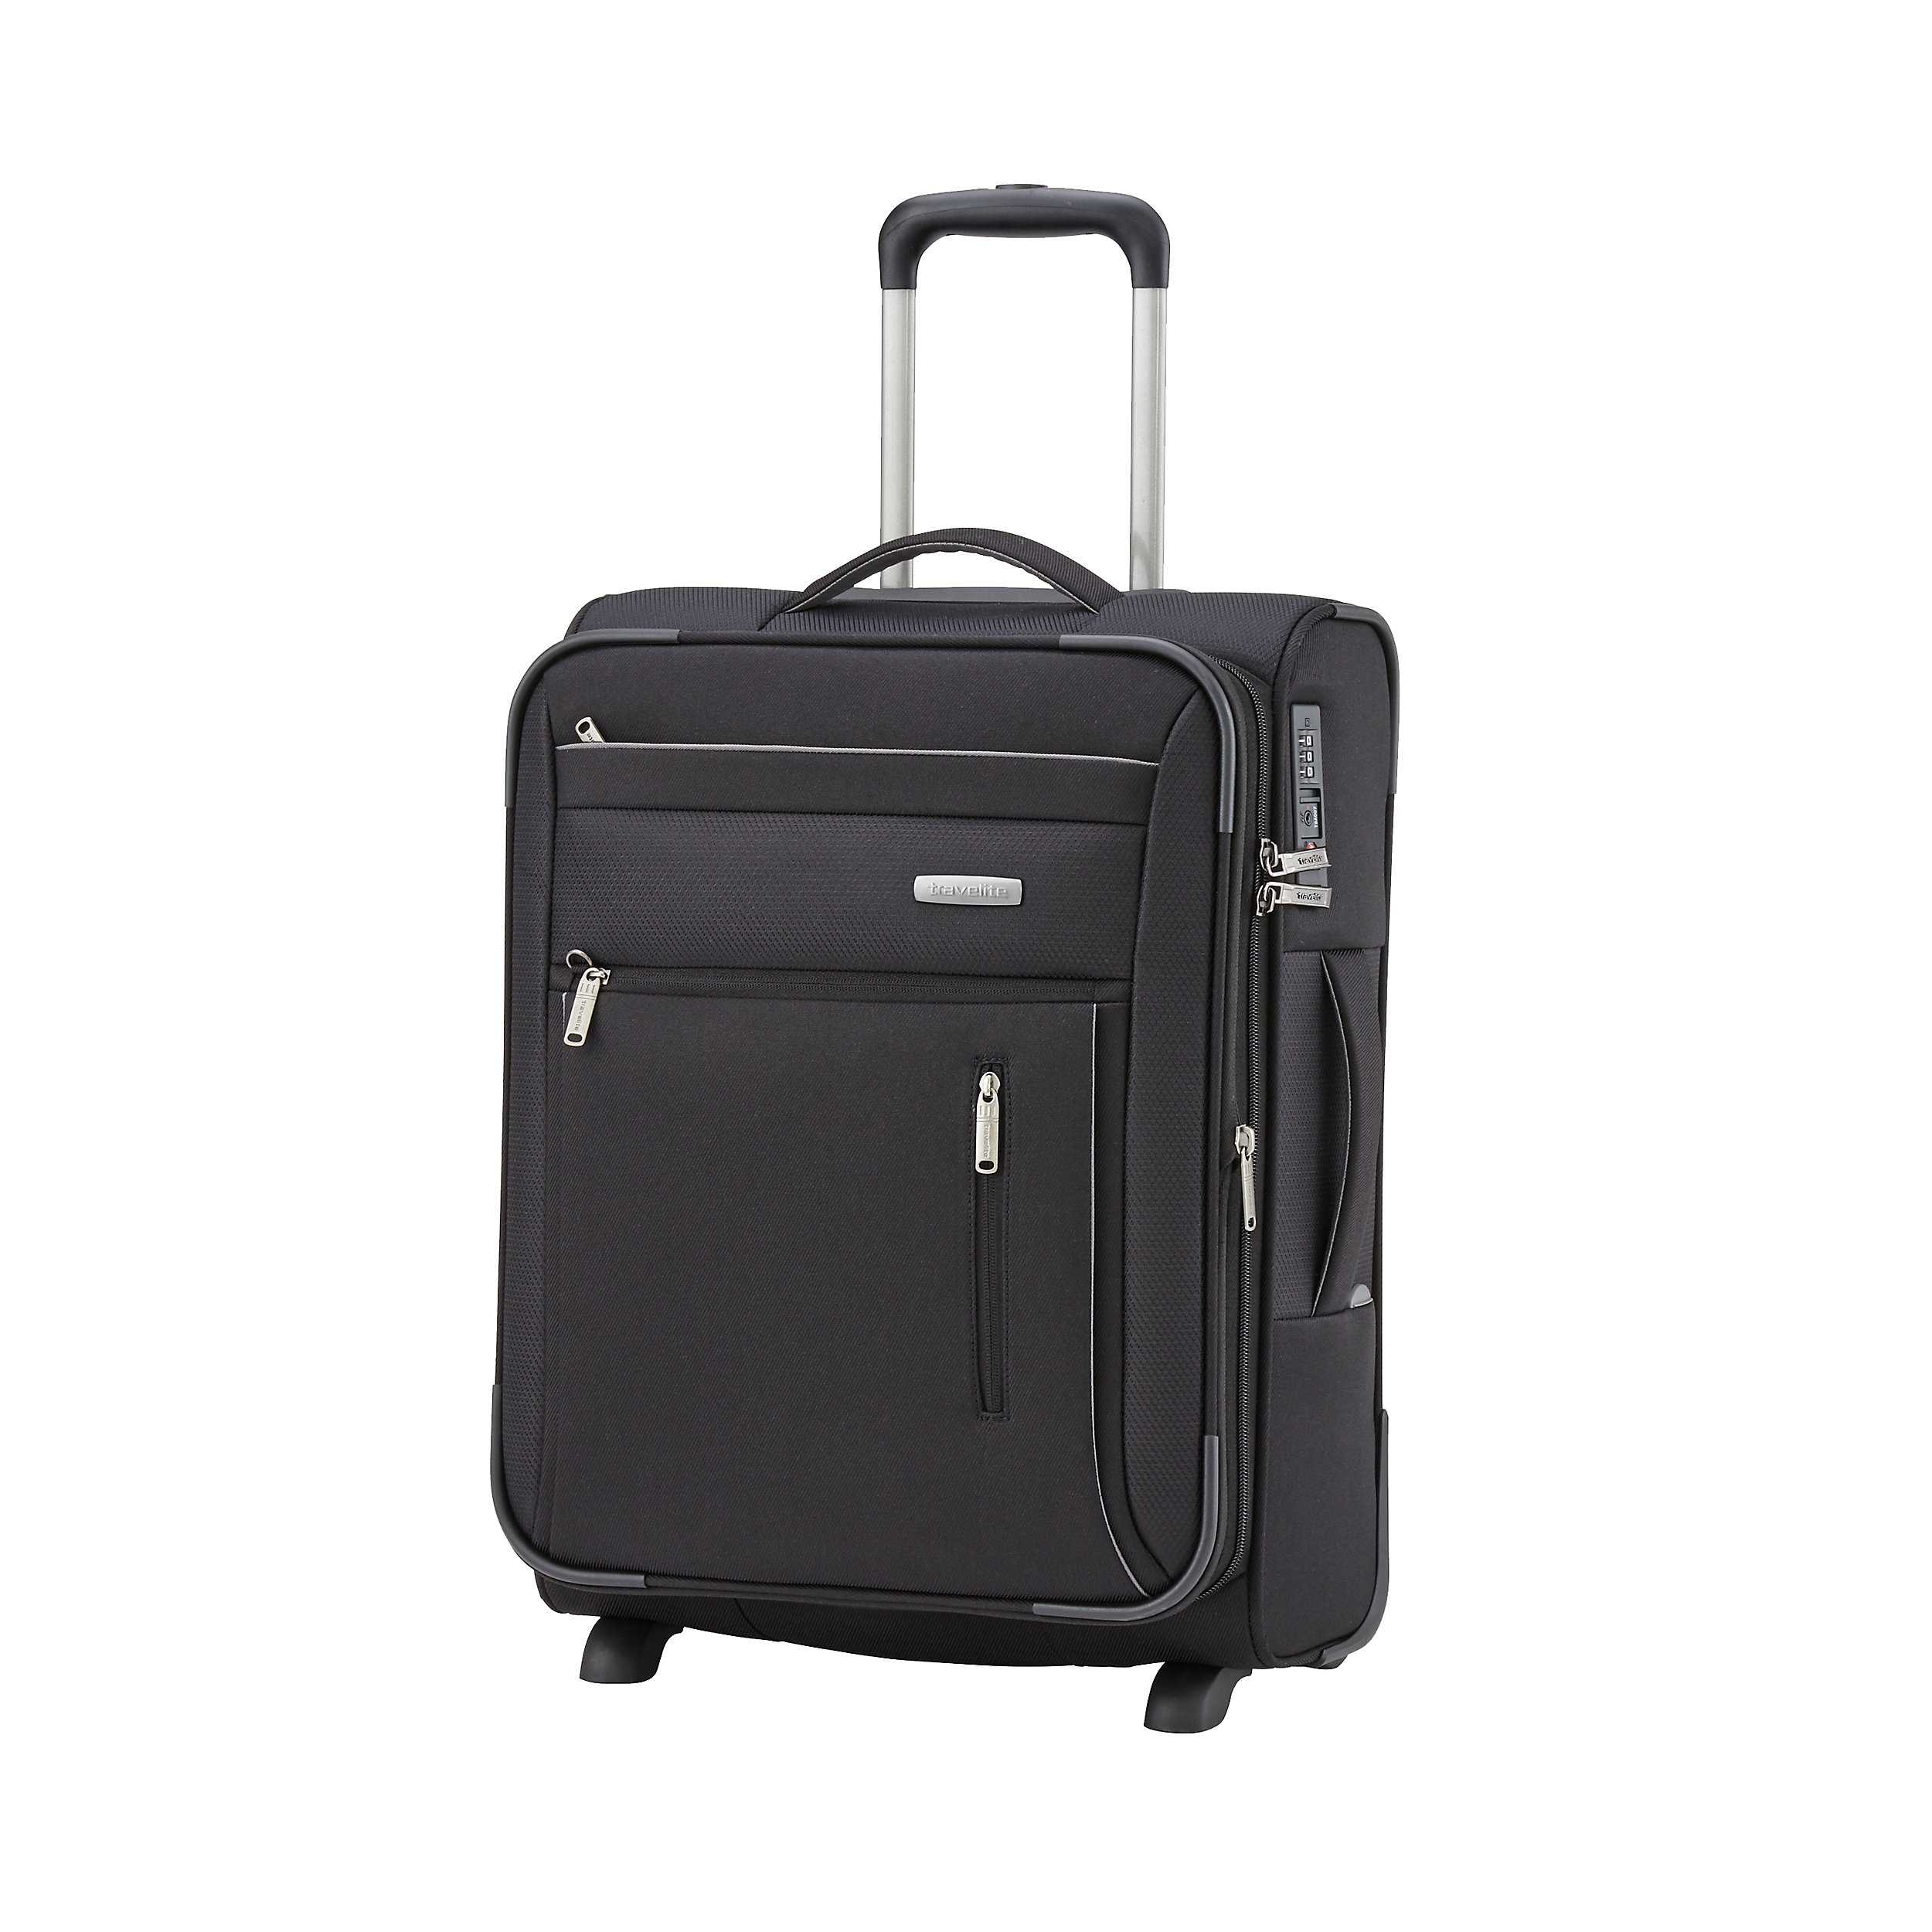 Carry-on Trolley with 2 wheels S 53cm EXP Travelite Capri 41 Liter